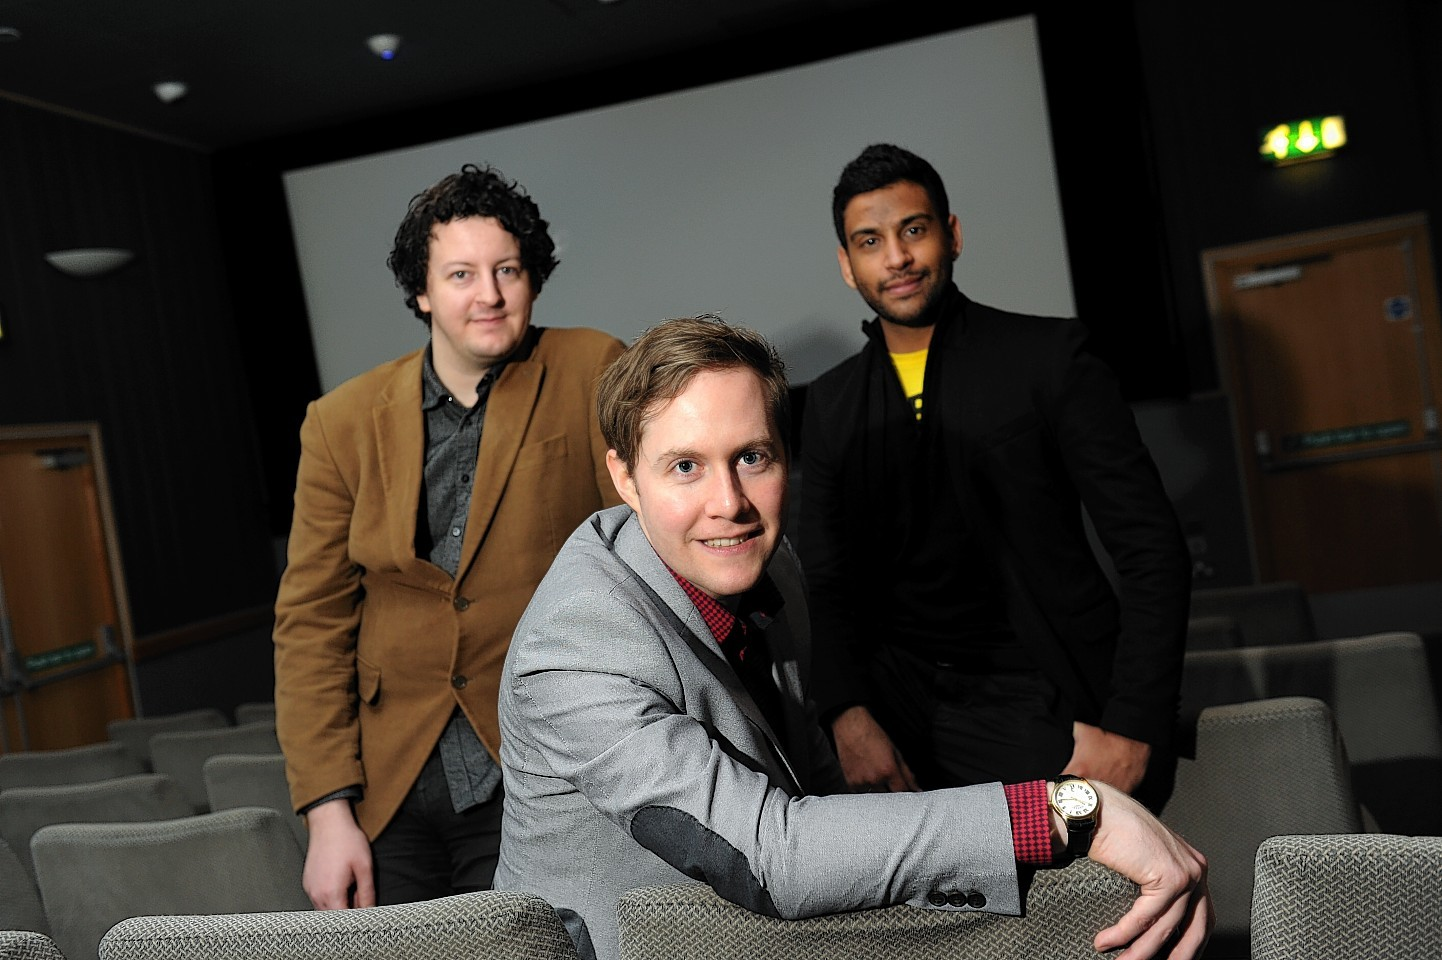 The men behind Candlestick showing at the Aberdeen Film Festival